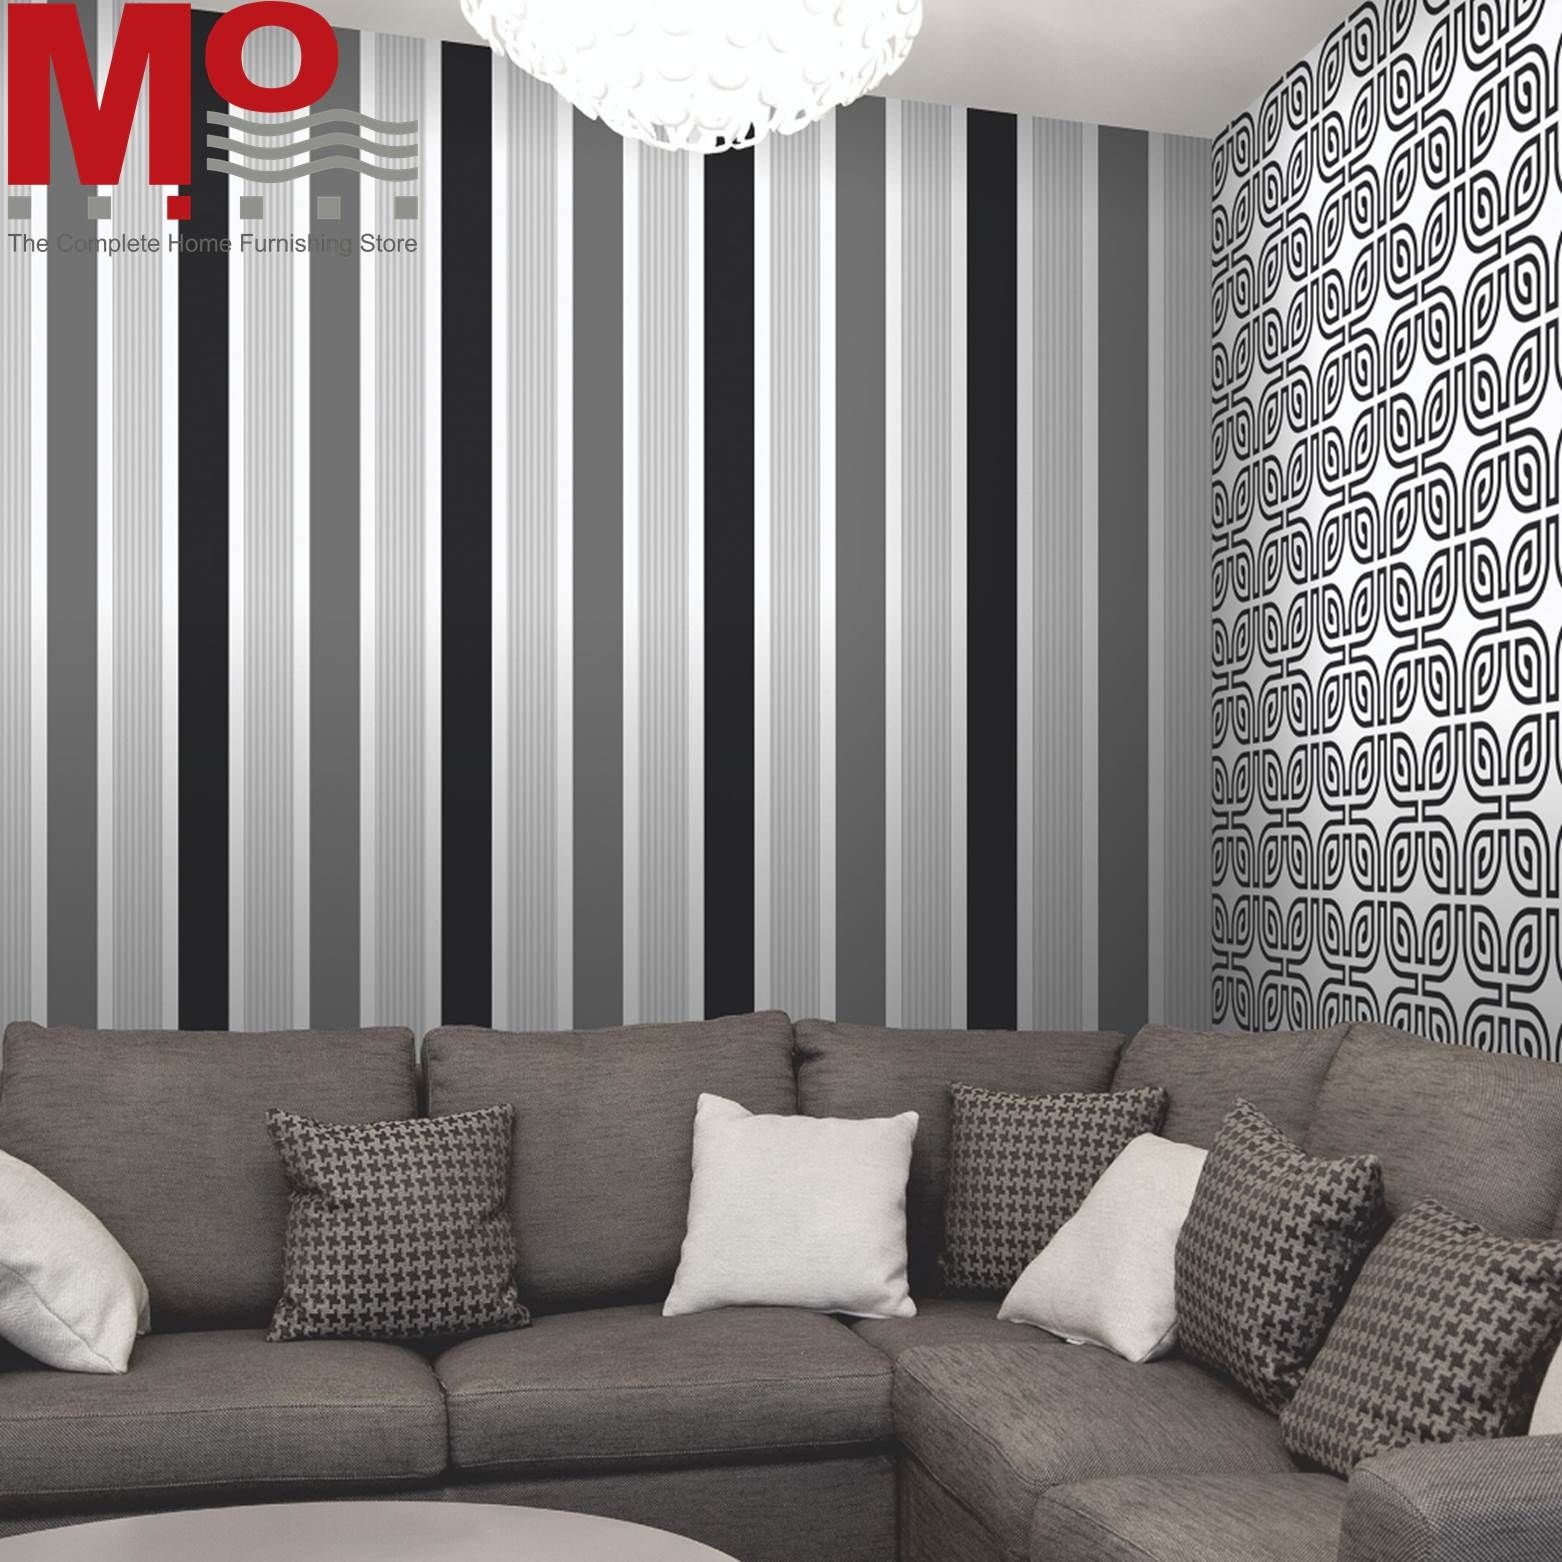 Give Your Walls Modern Look By Using Stripes Wallpaper Add Rich Colour And Pattern To Any Room In Striped Wallpaper Striped Wallpaper For Walls Home Wallpaper